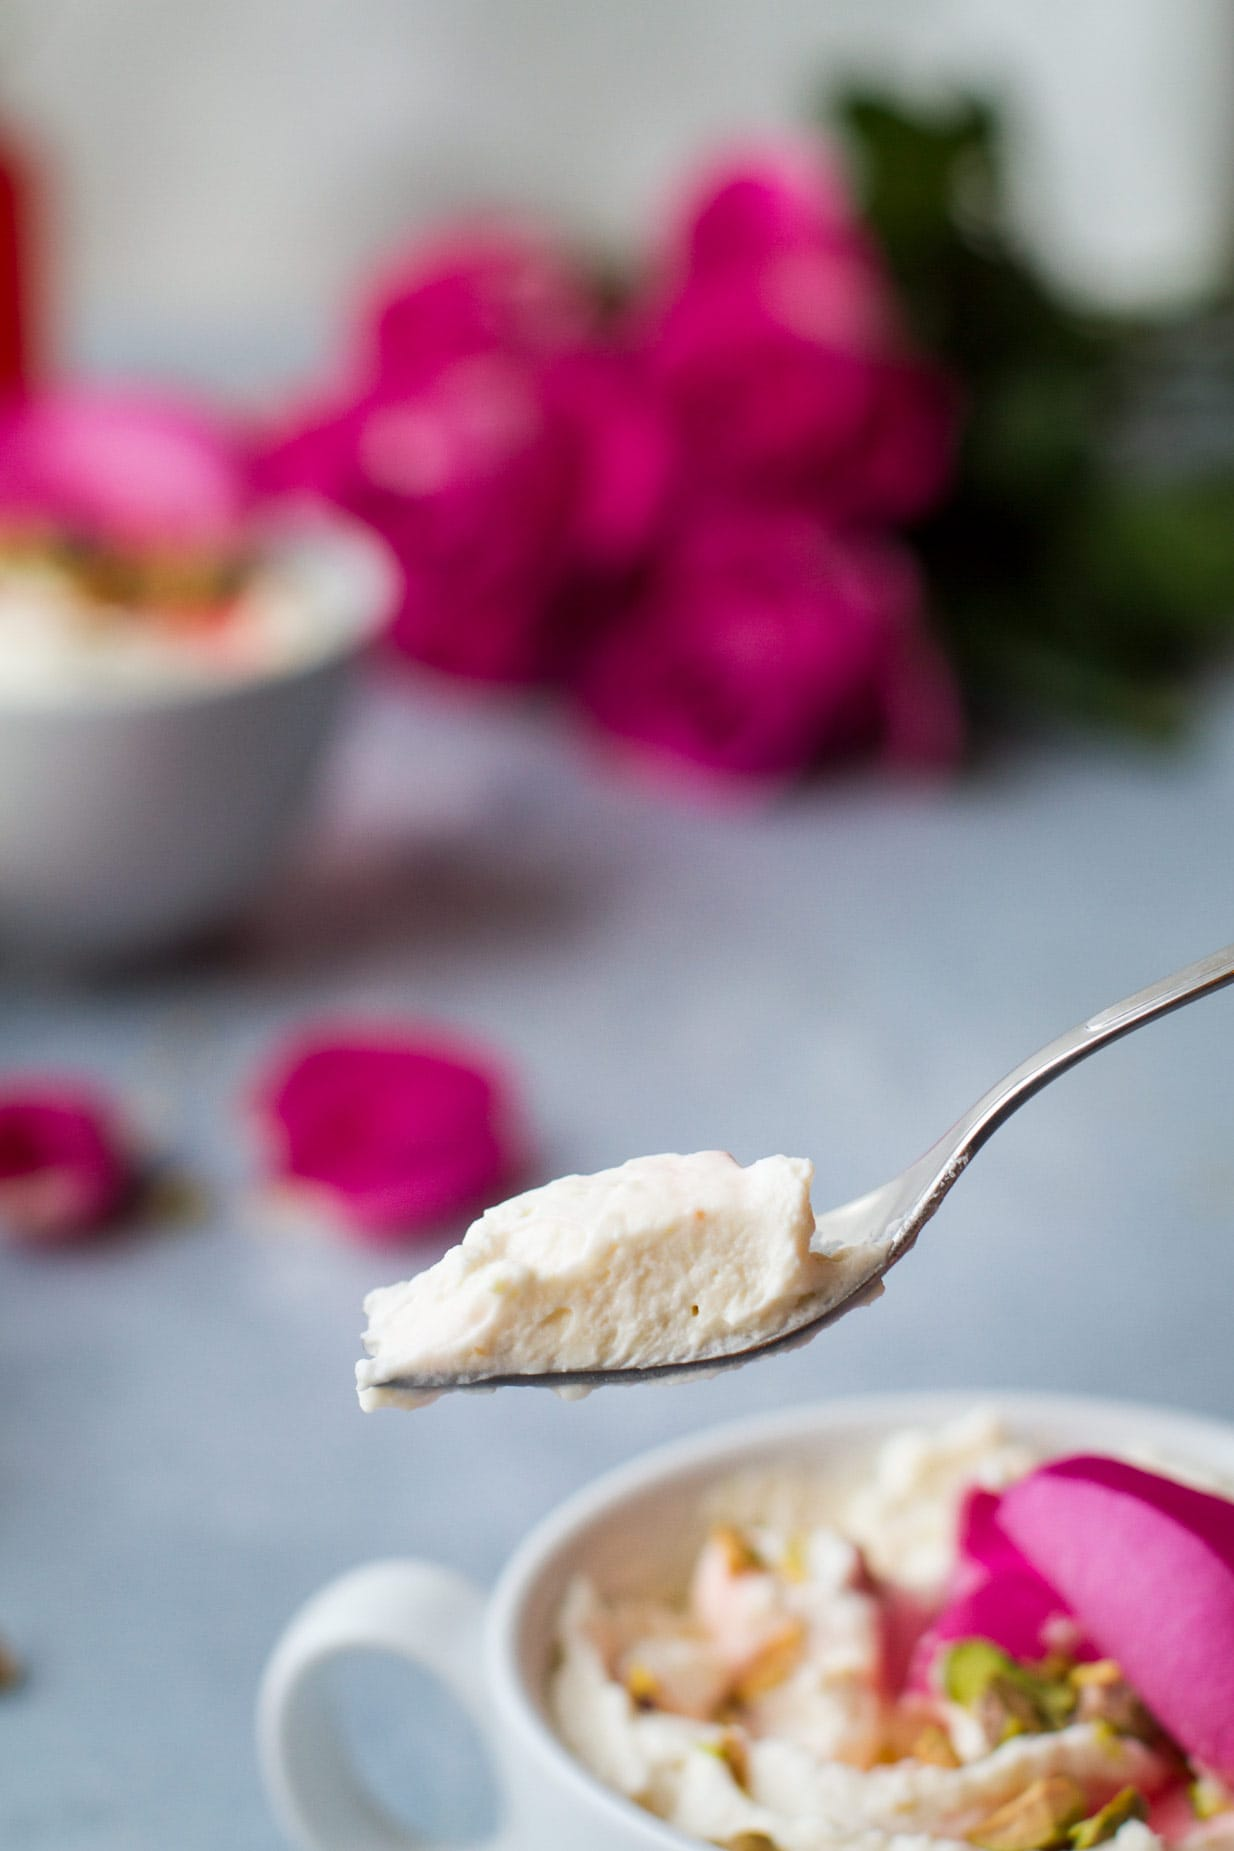 Closeup of a fork with a bite of white chocolate mousse. Cup with white chocolate mousse and roses are blurred in the background.